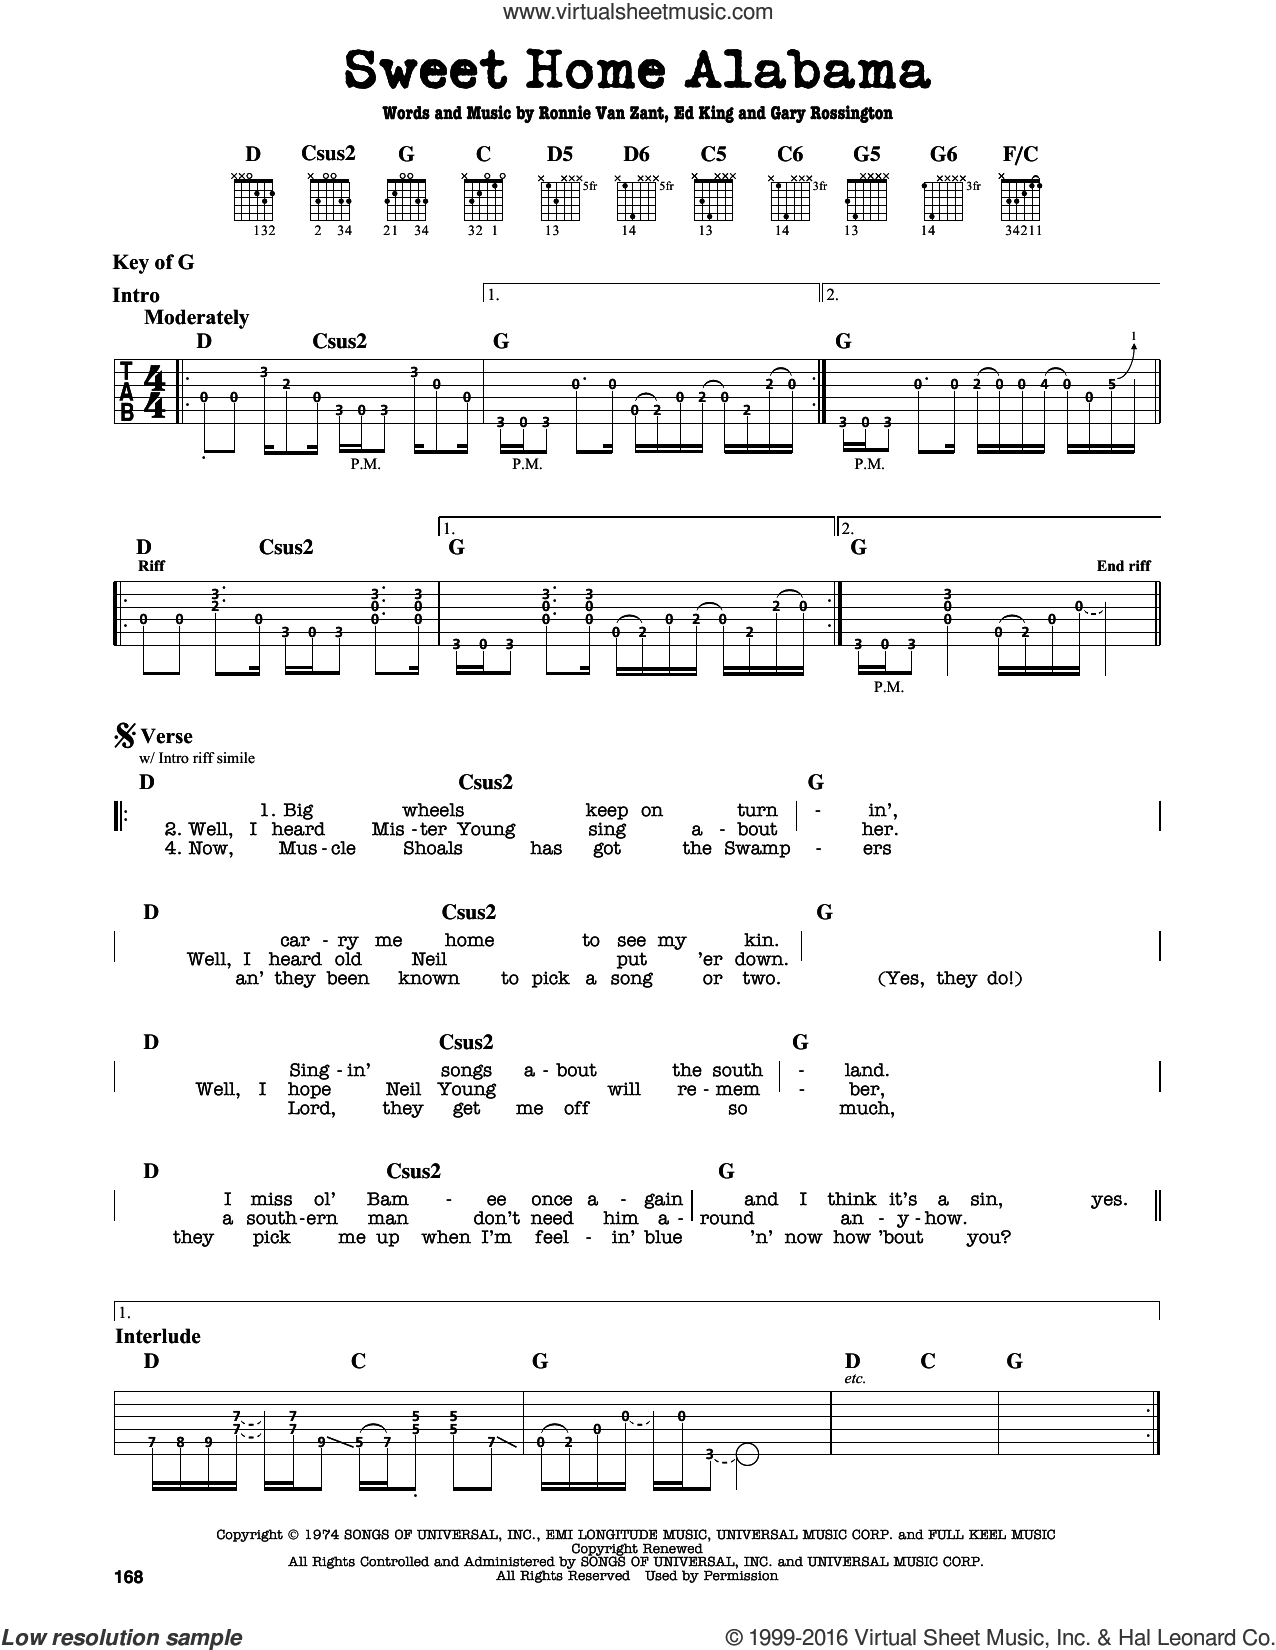 Sweet Home Alabama sheet music for guitar solo (lead sheet) by Ronnie Van Zant, Alabama, Lynyrd Skynyrd, Edward King and Gary Rossington. Score Image Preview.